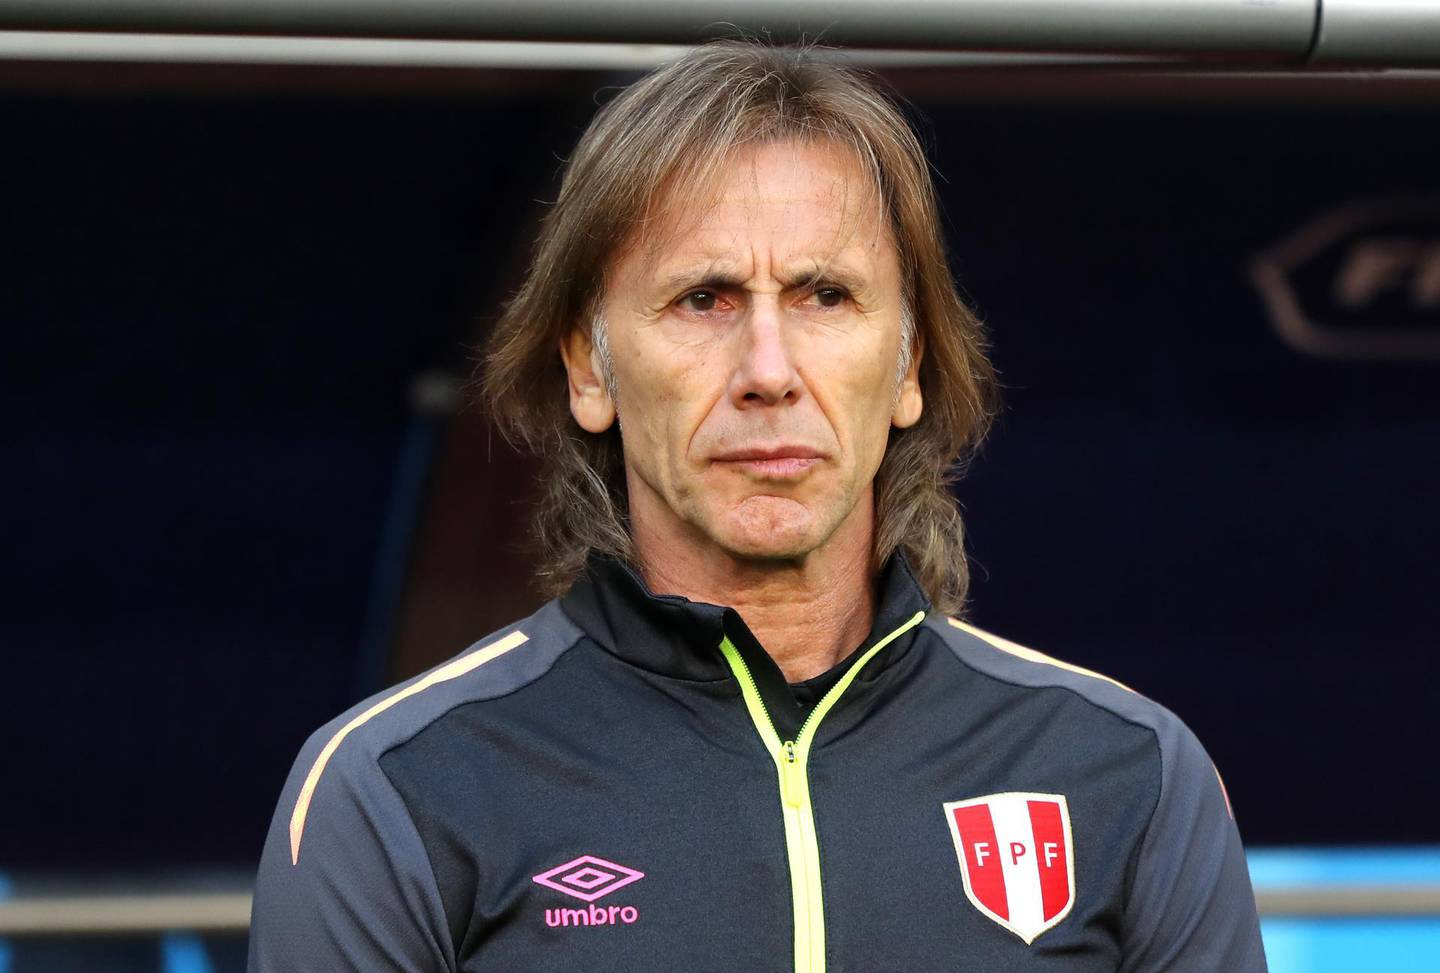 SARANSK, RUSSIA - JUNE 16:  Ricardo Gareca, Head coach of Peru looks on prior to the 2018 FIFA World Cup Russia group C match between Peru and Denmark at Mordovia Arena on June 16, 2018 in Saransk, Russia.  (Photo by Elsa/Getty Images)